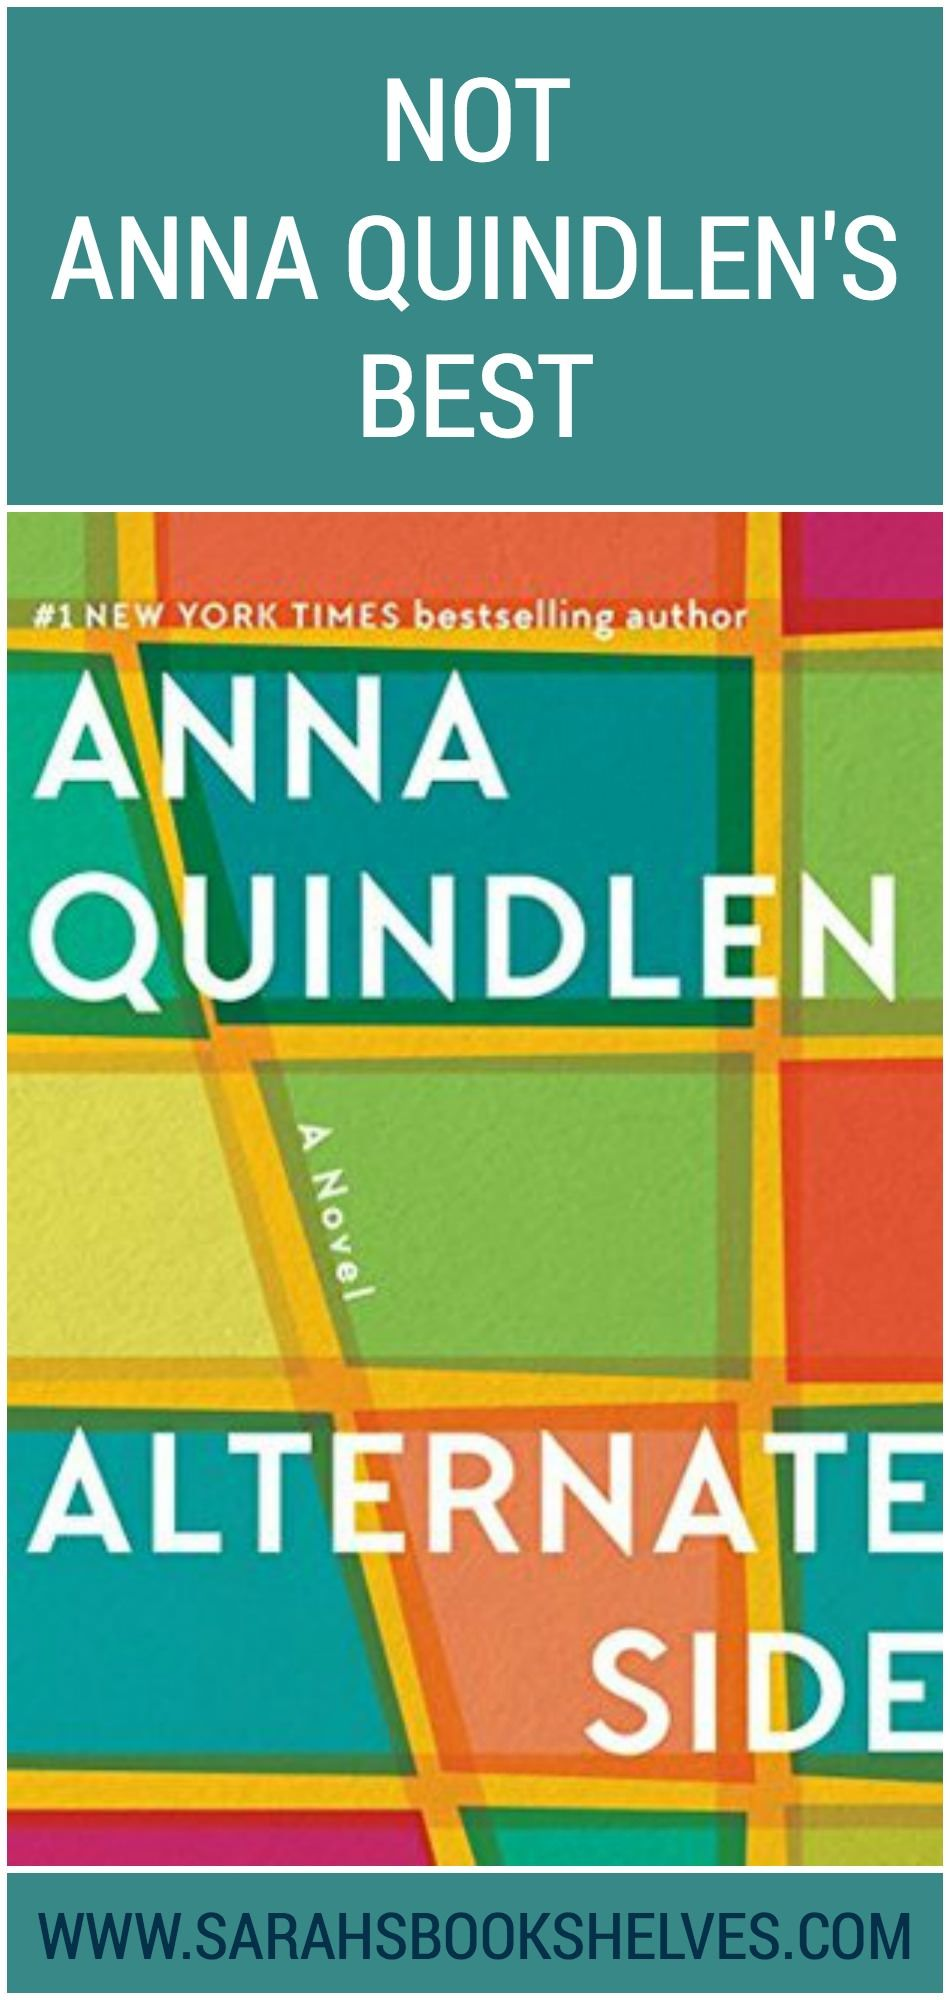 Alternate side by anna quindlen when a favorite author